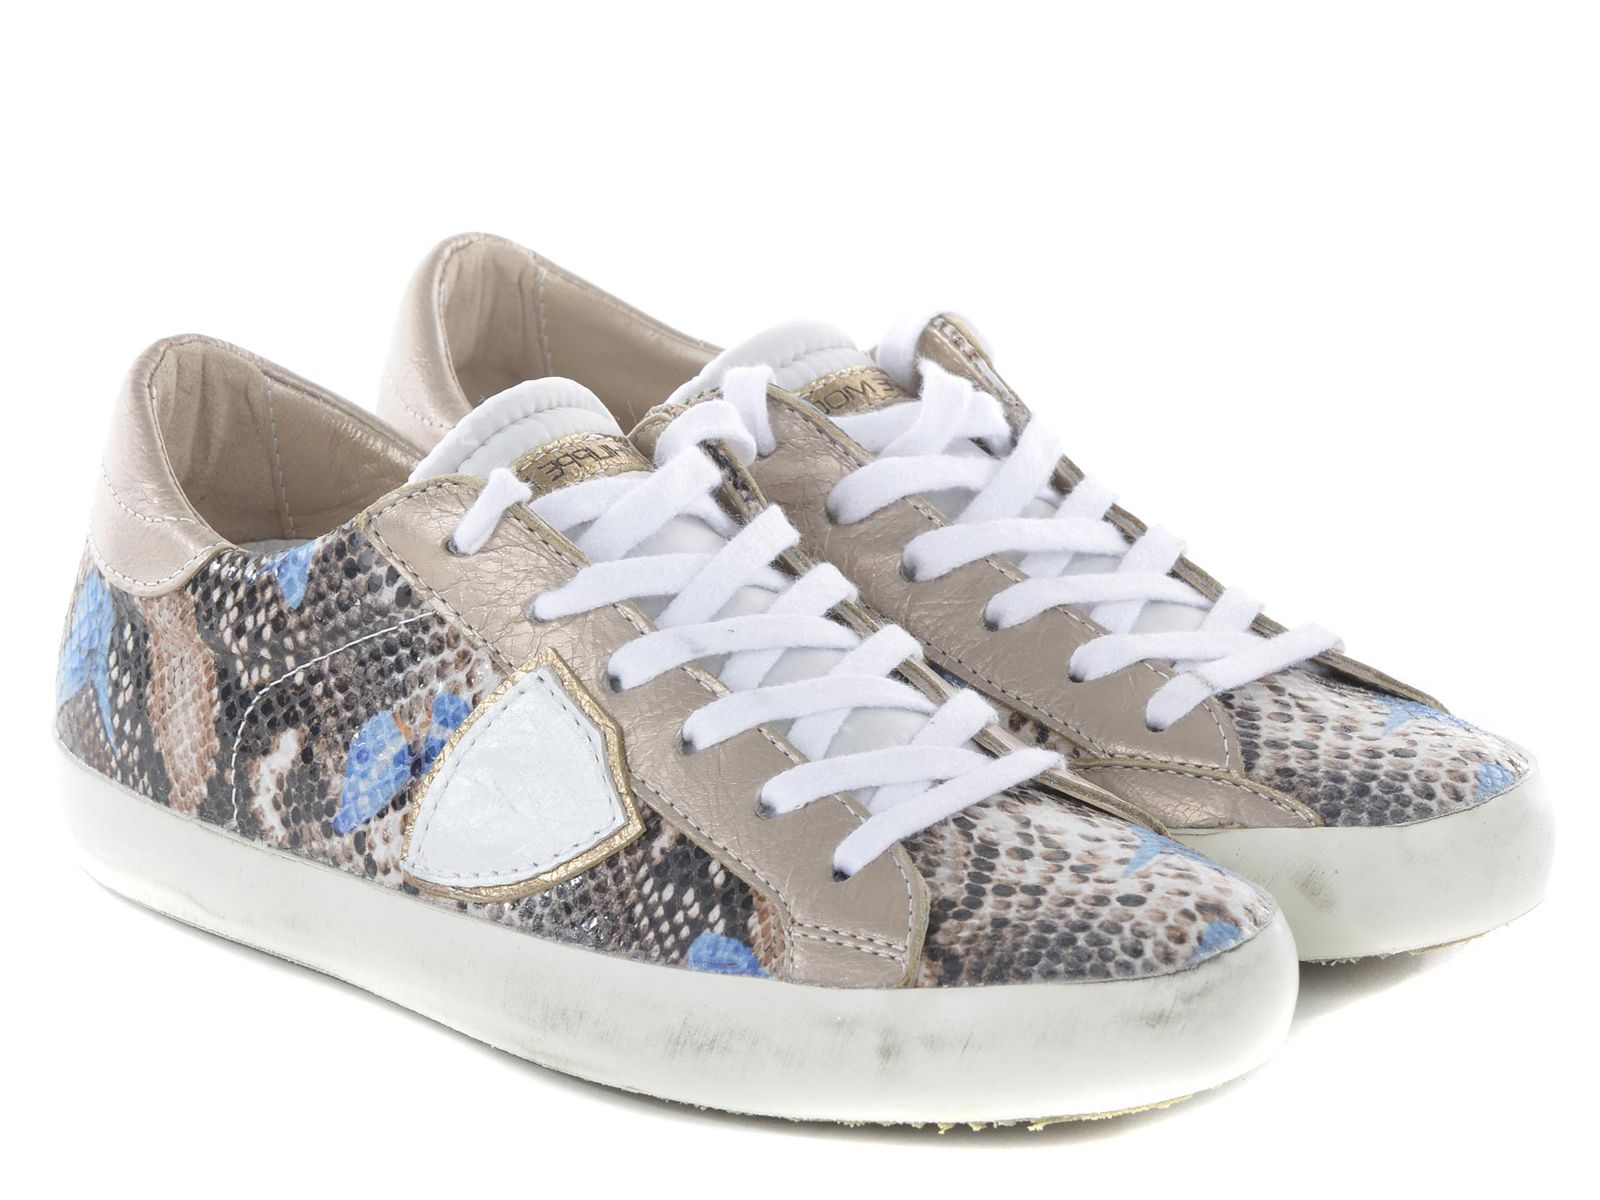 Philippe Model women sneakers in beige python print - Italian Boutique €169